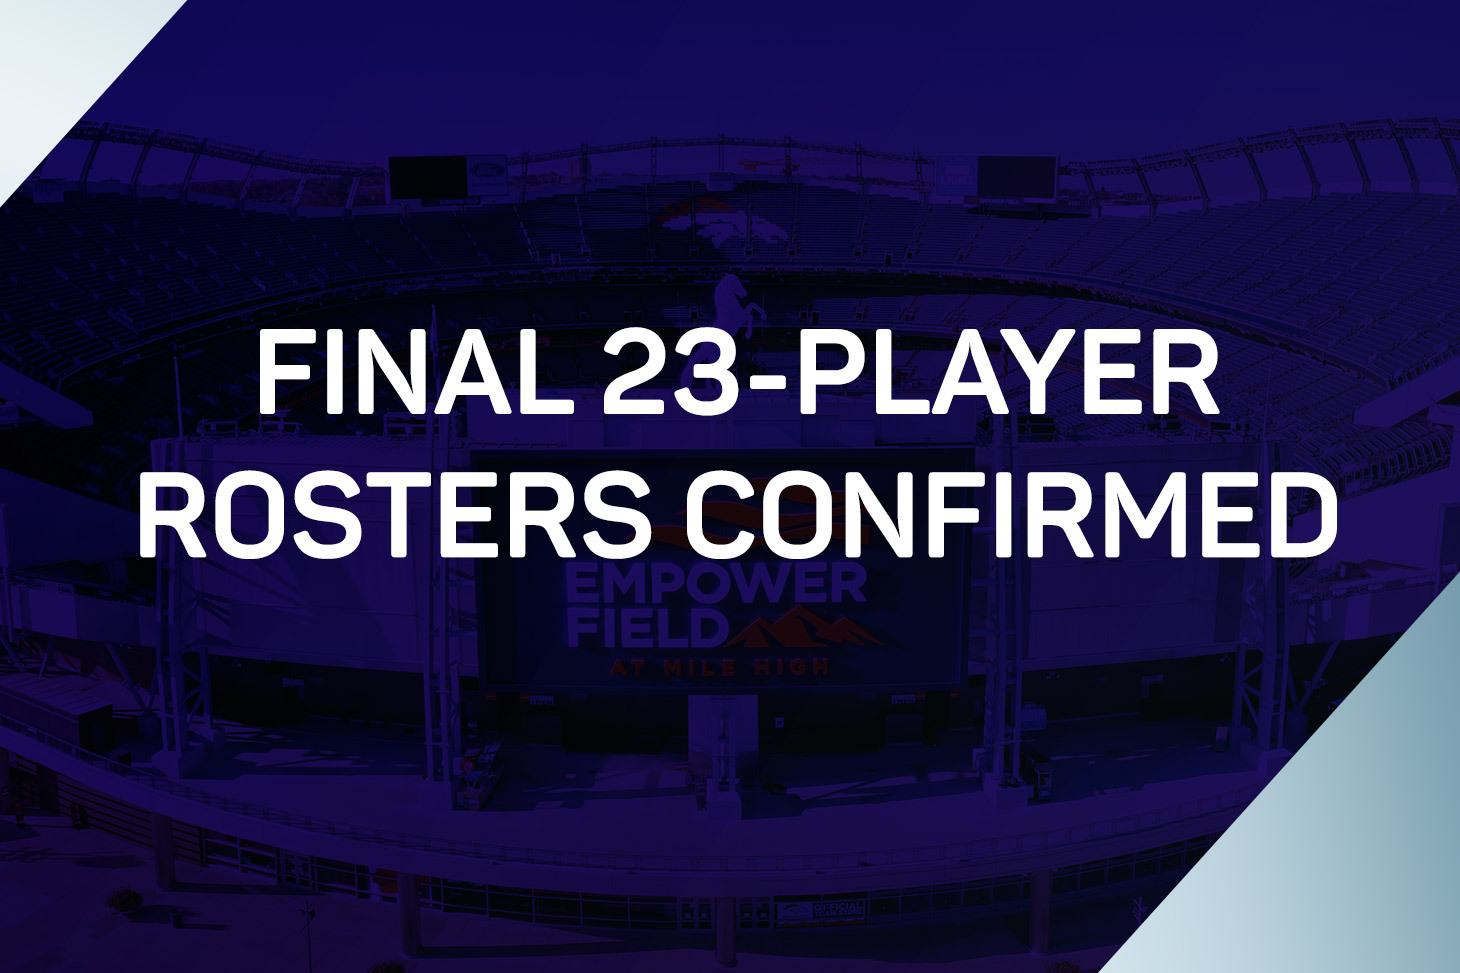 Final 23-player rosters confirmed for 2021 Concacaf Nations League Finals